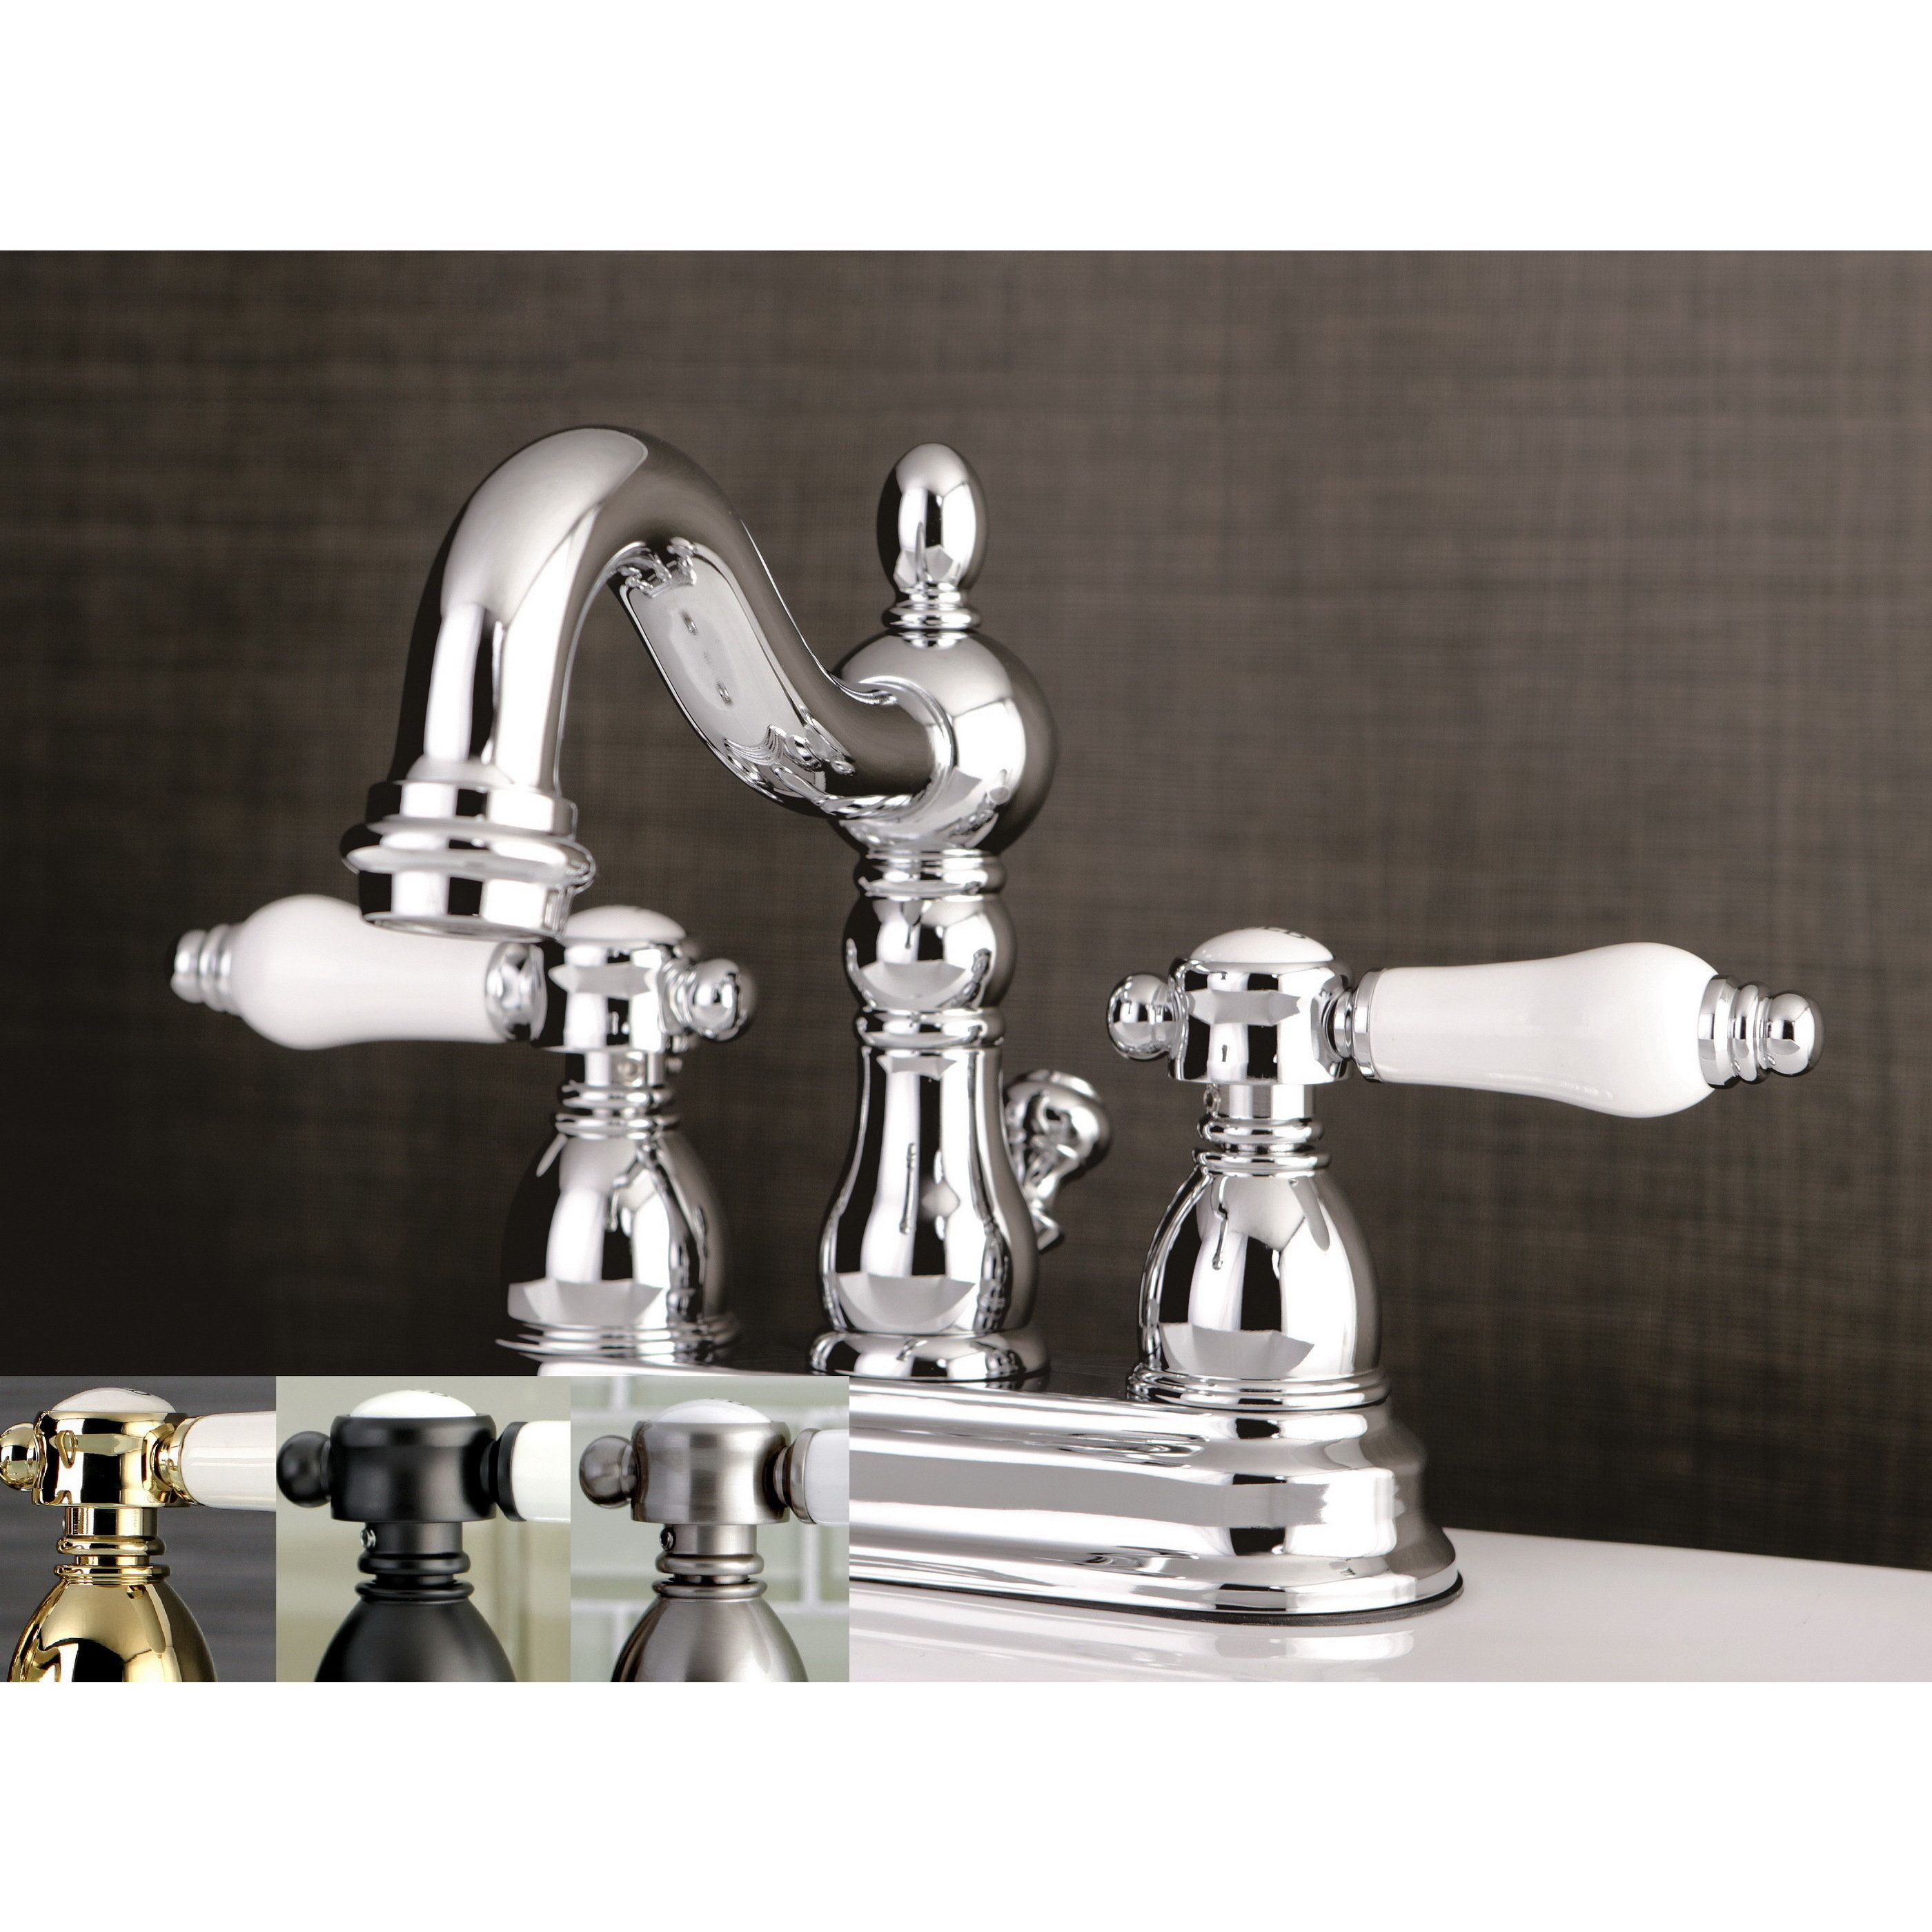 Kingston Brass Victorian Porcelain Handles Bathroom Faucet (Silver ...